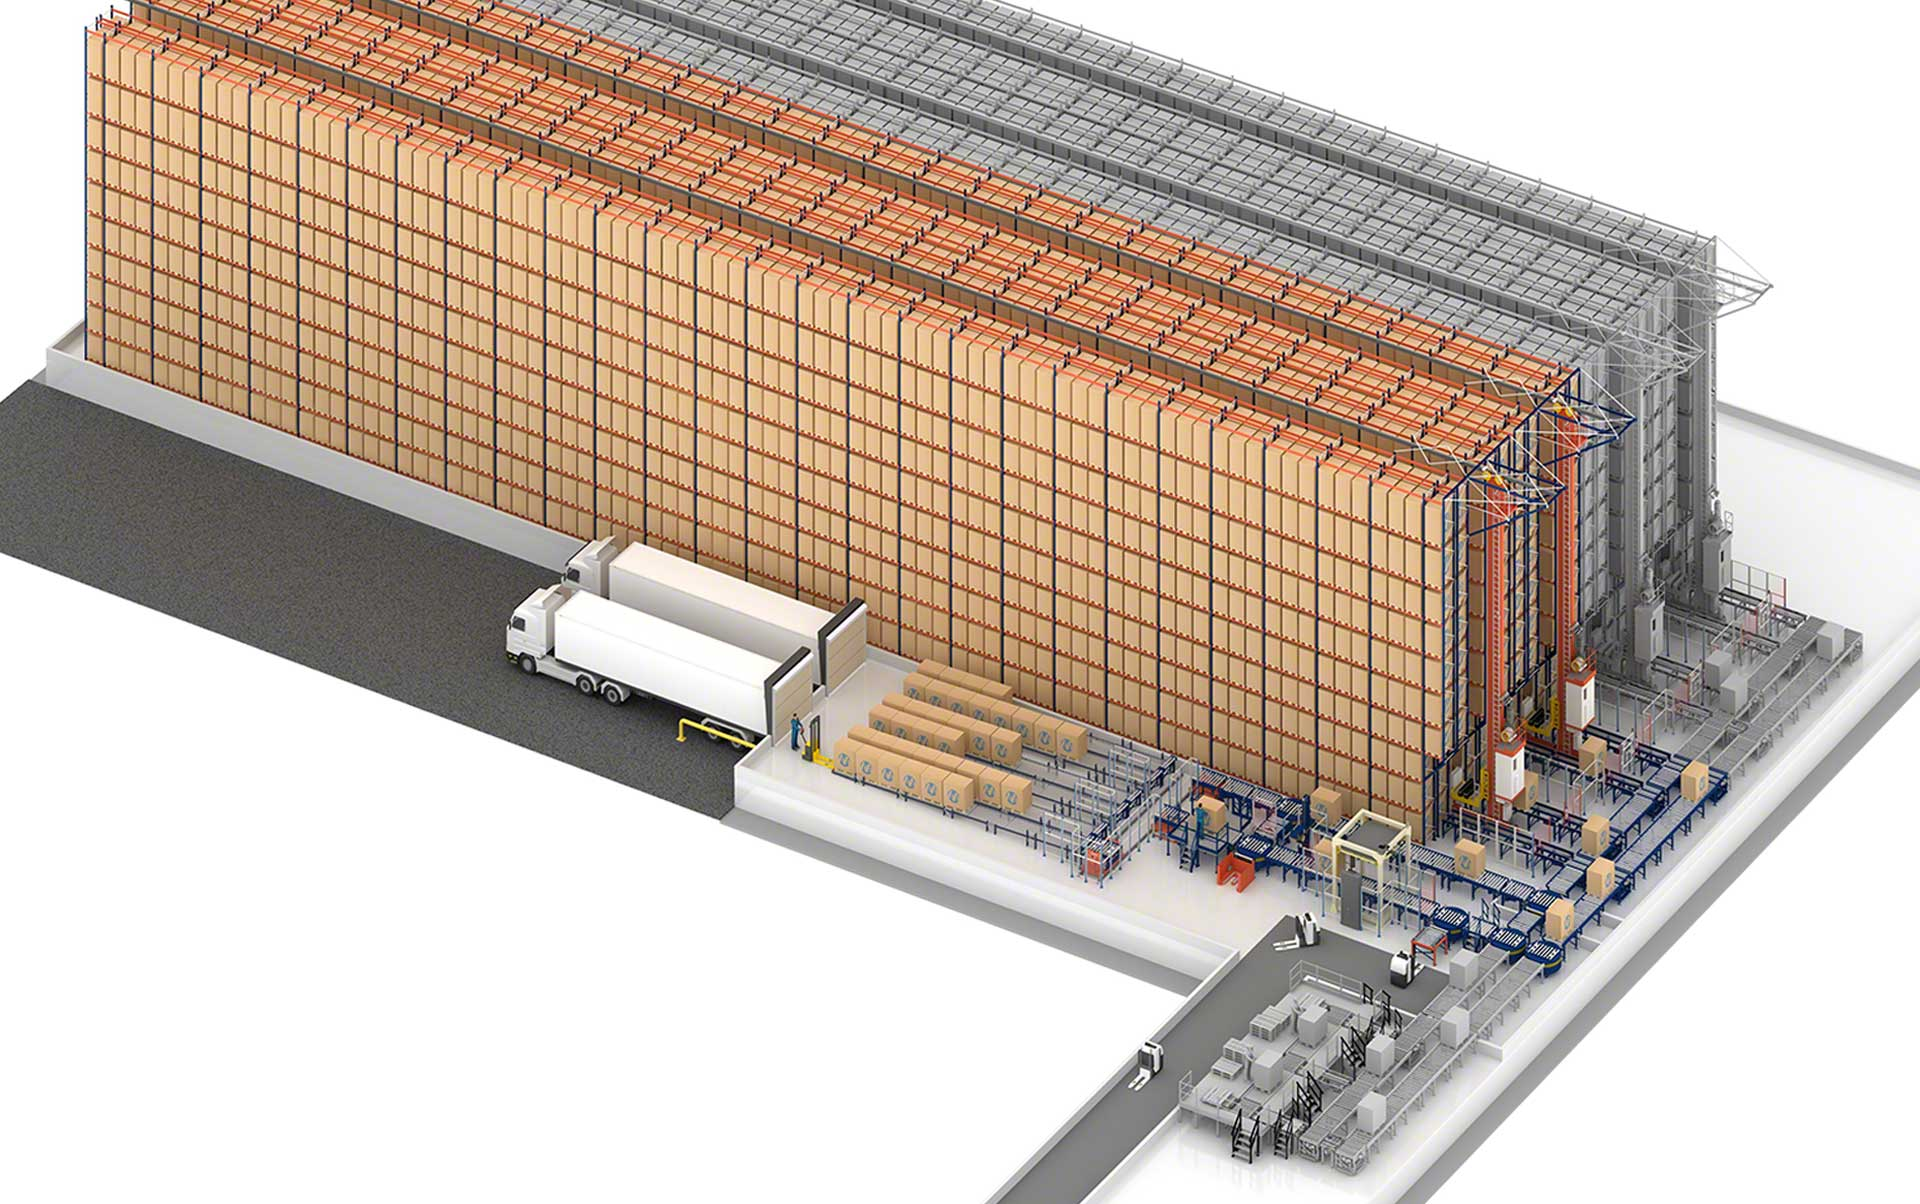 Sabarot's automated warehouse in France with capacity for 6,376 pallets